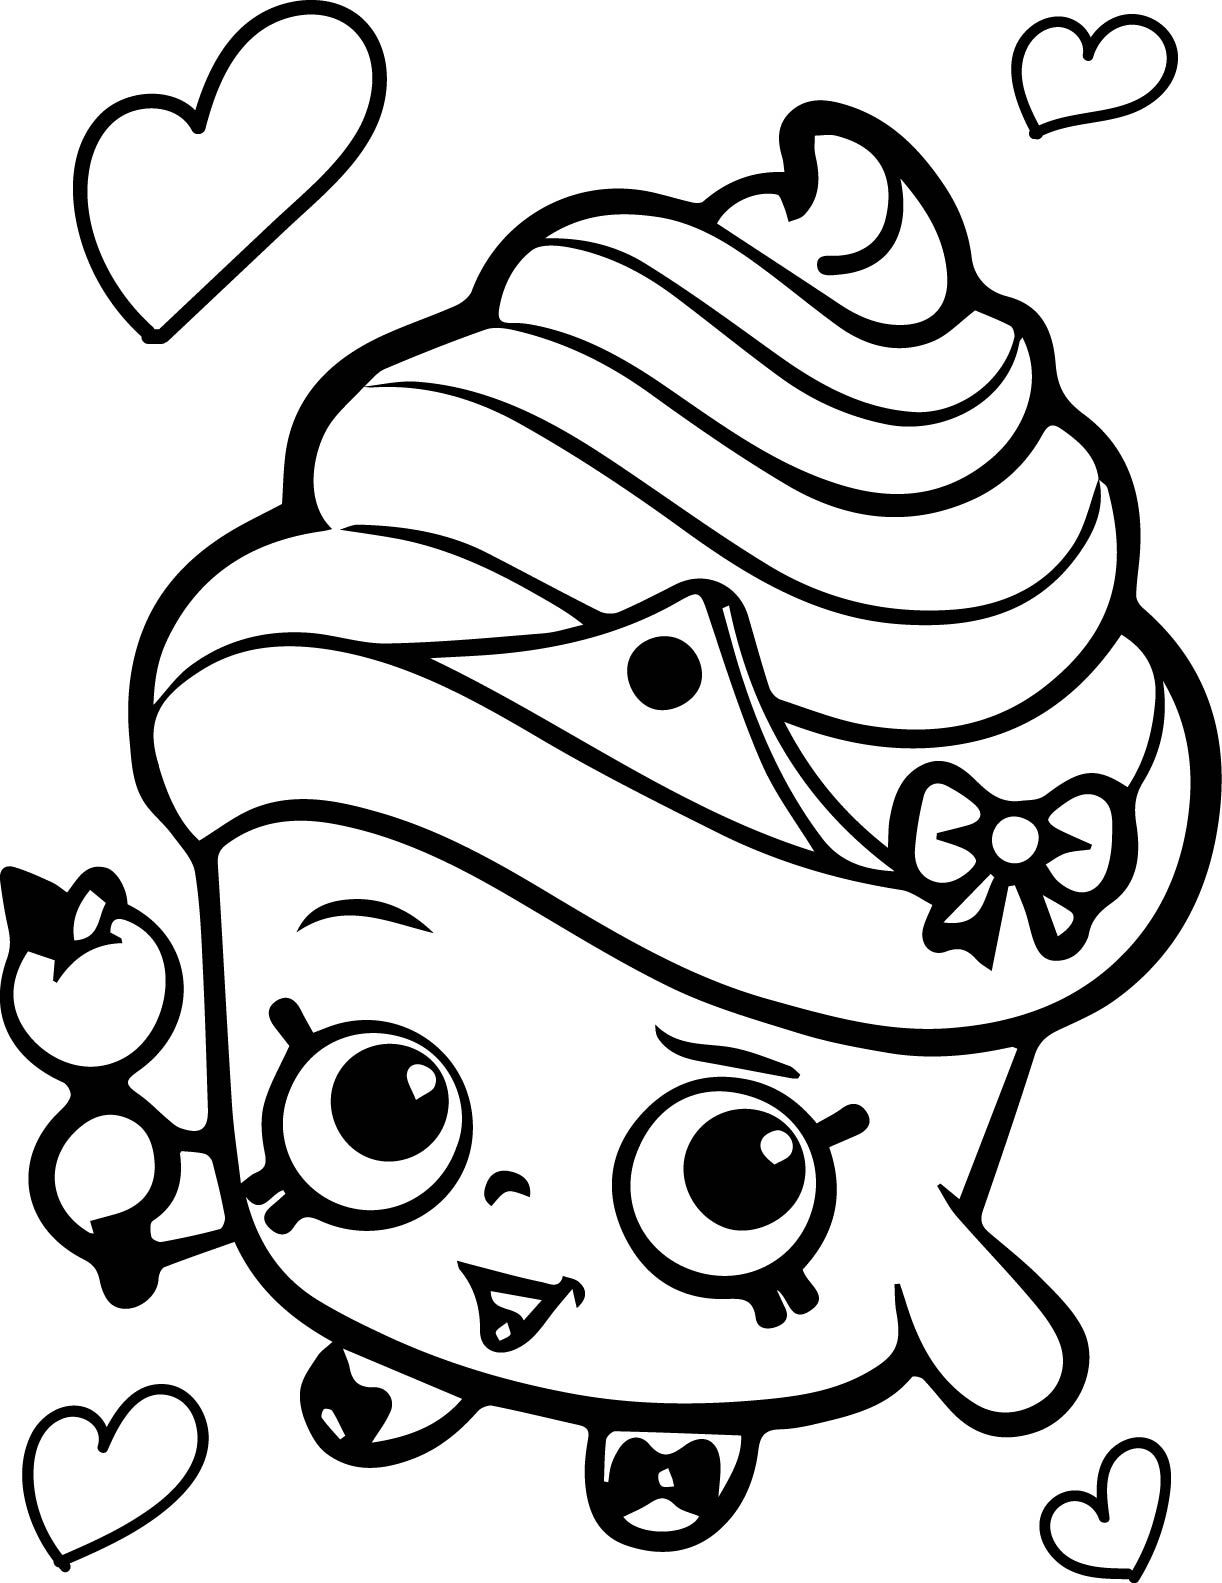 Shopkins Coloring Pages 9 Coloring Shopkins Colouring Pages